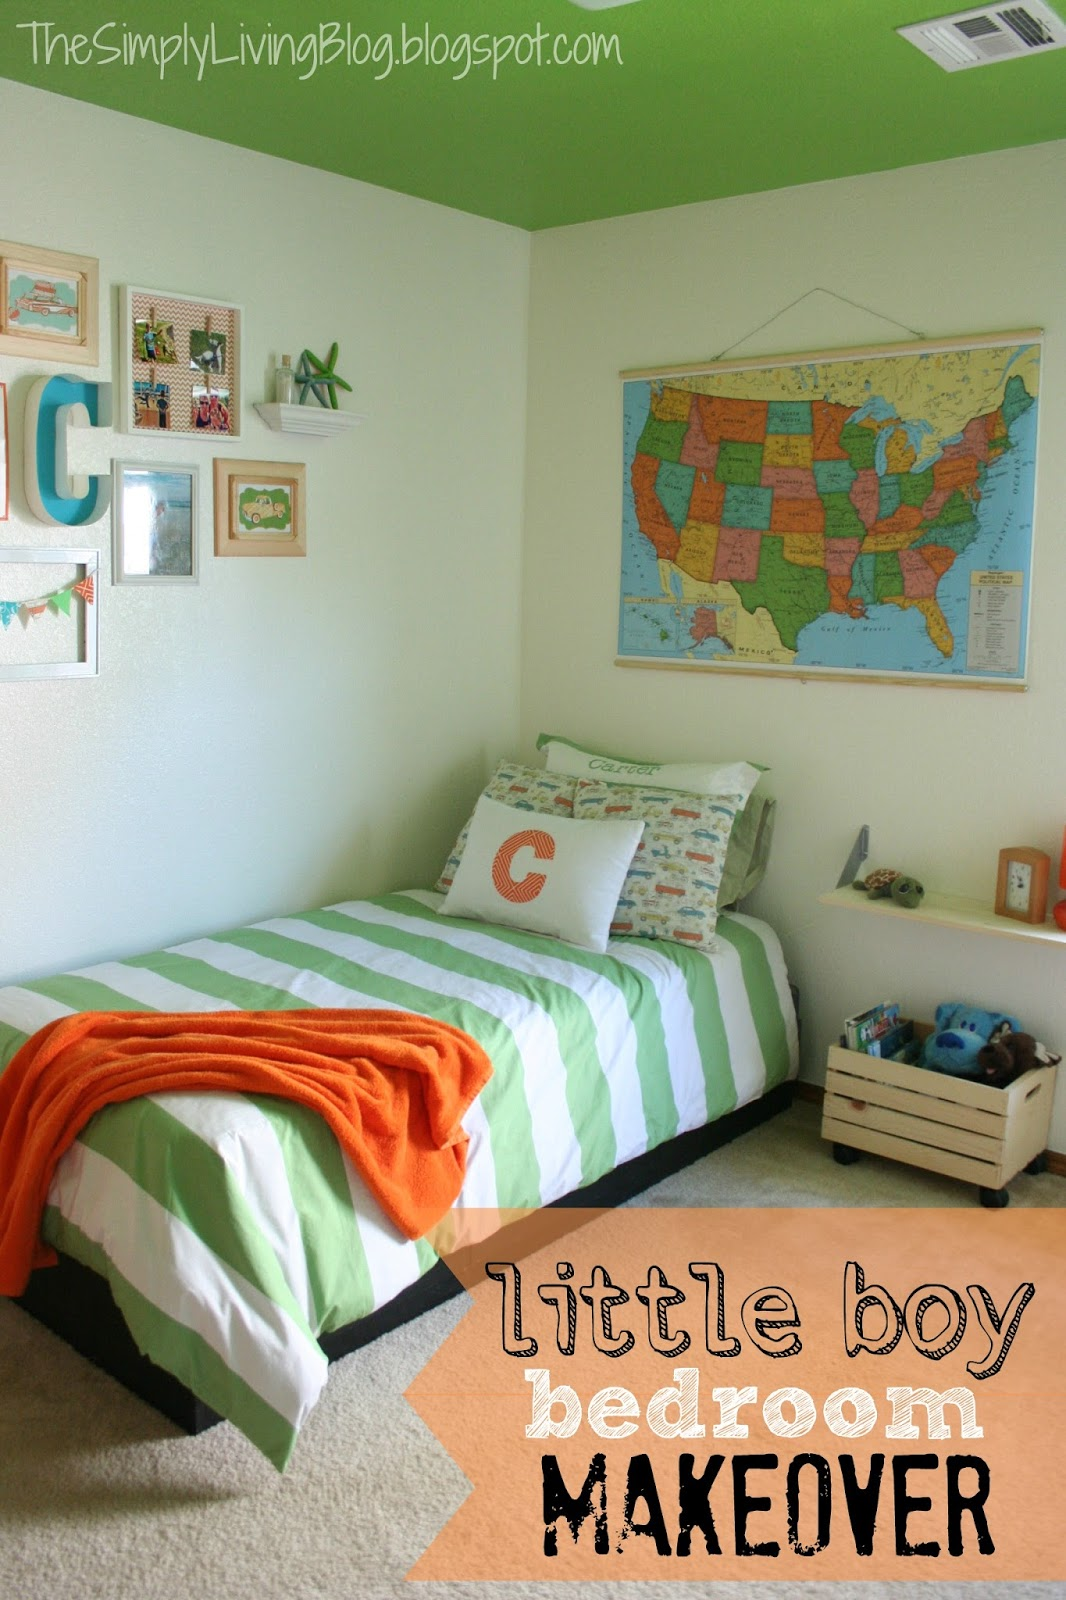 terrific little boy bedroom decorating ideas | Simply Living : Little Boy Bedroom Makeover